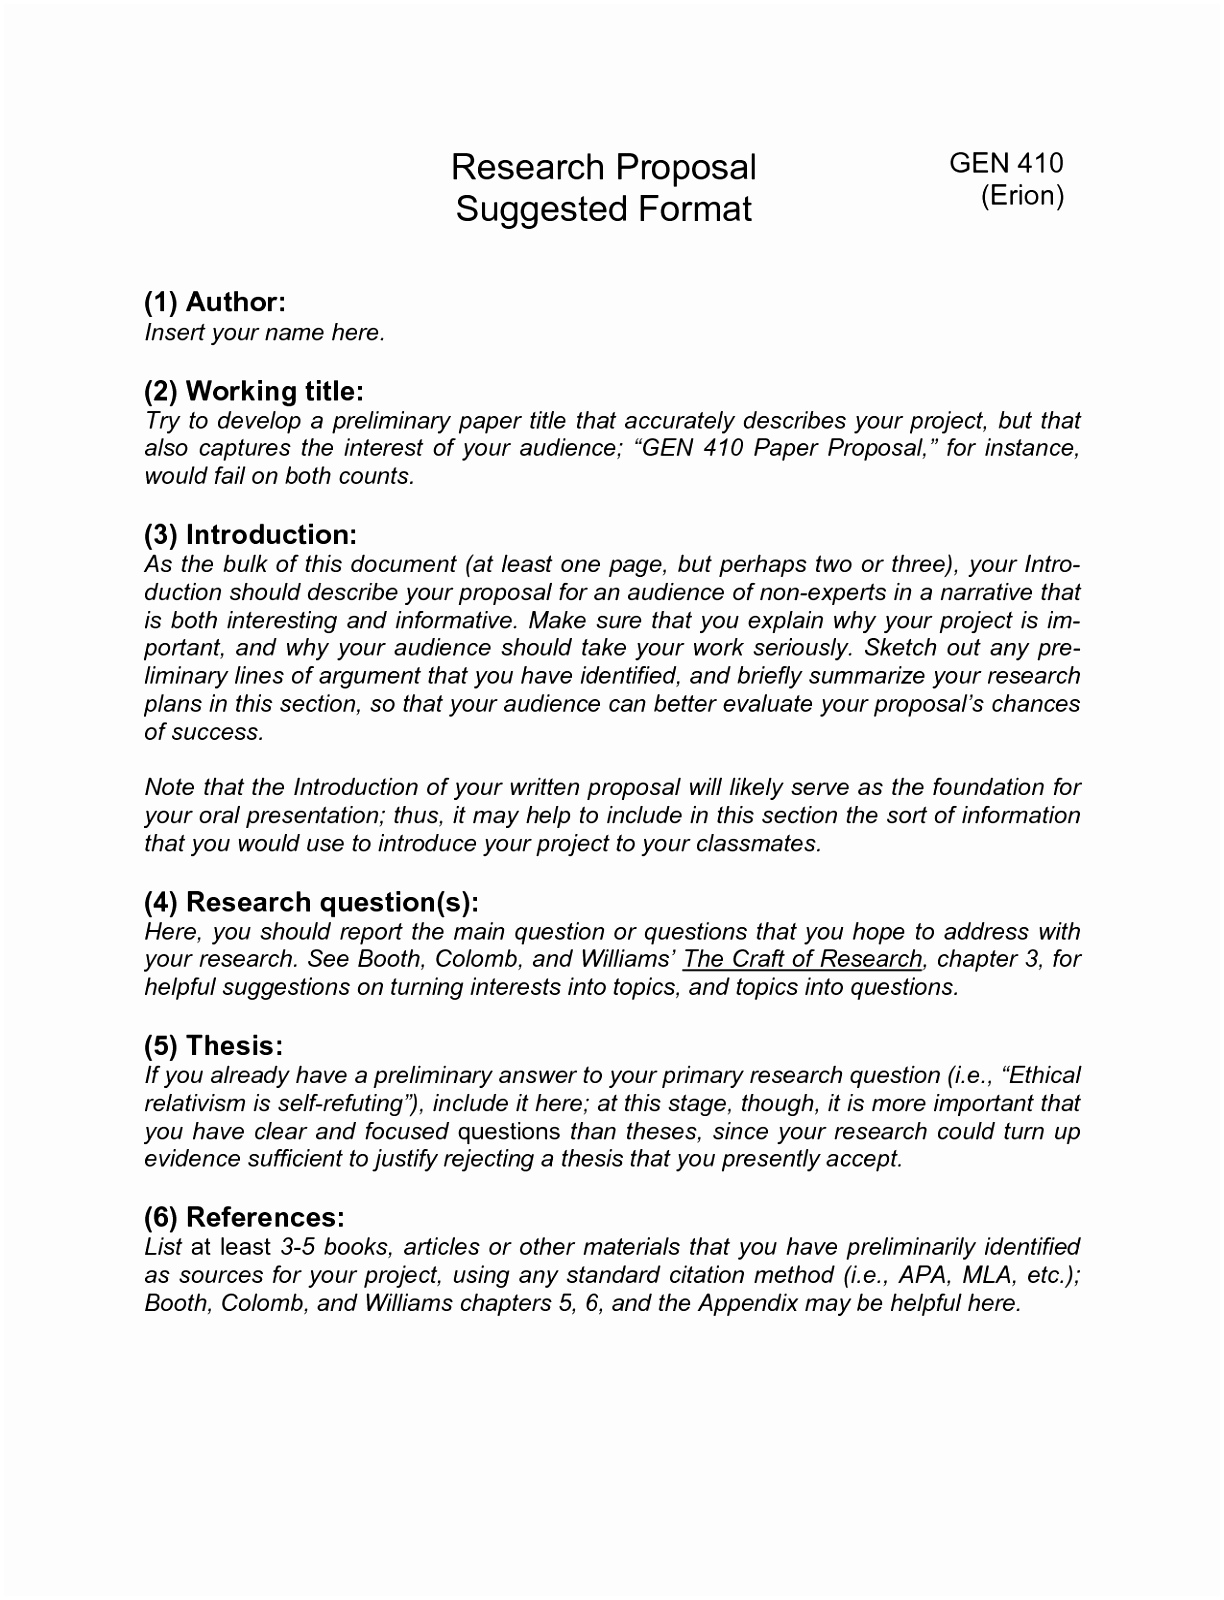 015 Research Paper Proposals Standard Format Agipeadosencolombia Printable Template For Writing Proposal Fresh Pdf Word Excel Download Templates Uwuep Of Sensational Sample Examples Full